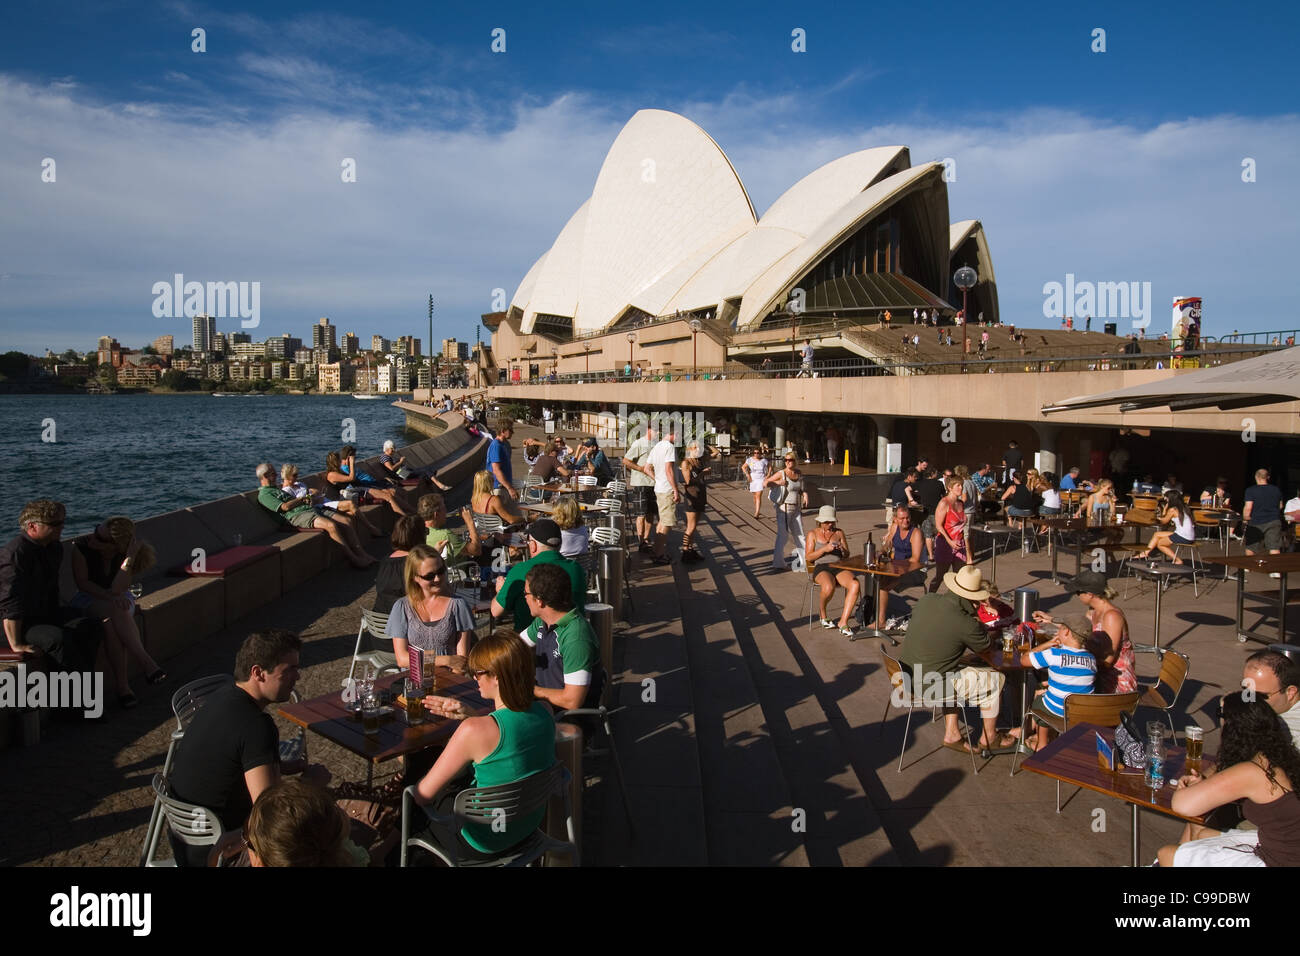 People enjoying waterfront drinks at the Opera Bar, at the foot of the Opera House. Sydney, New South Wales, Australia - Stock Image